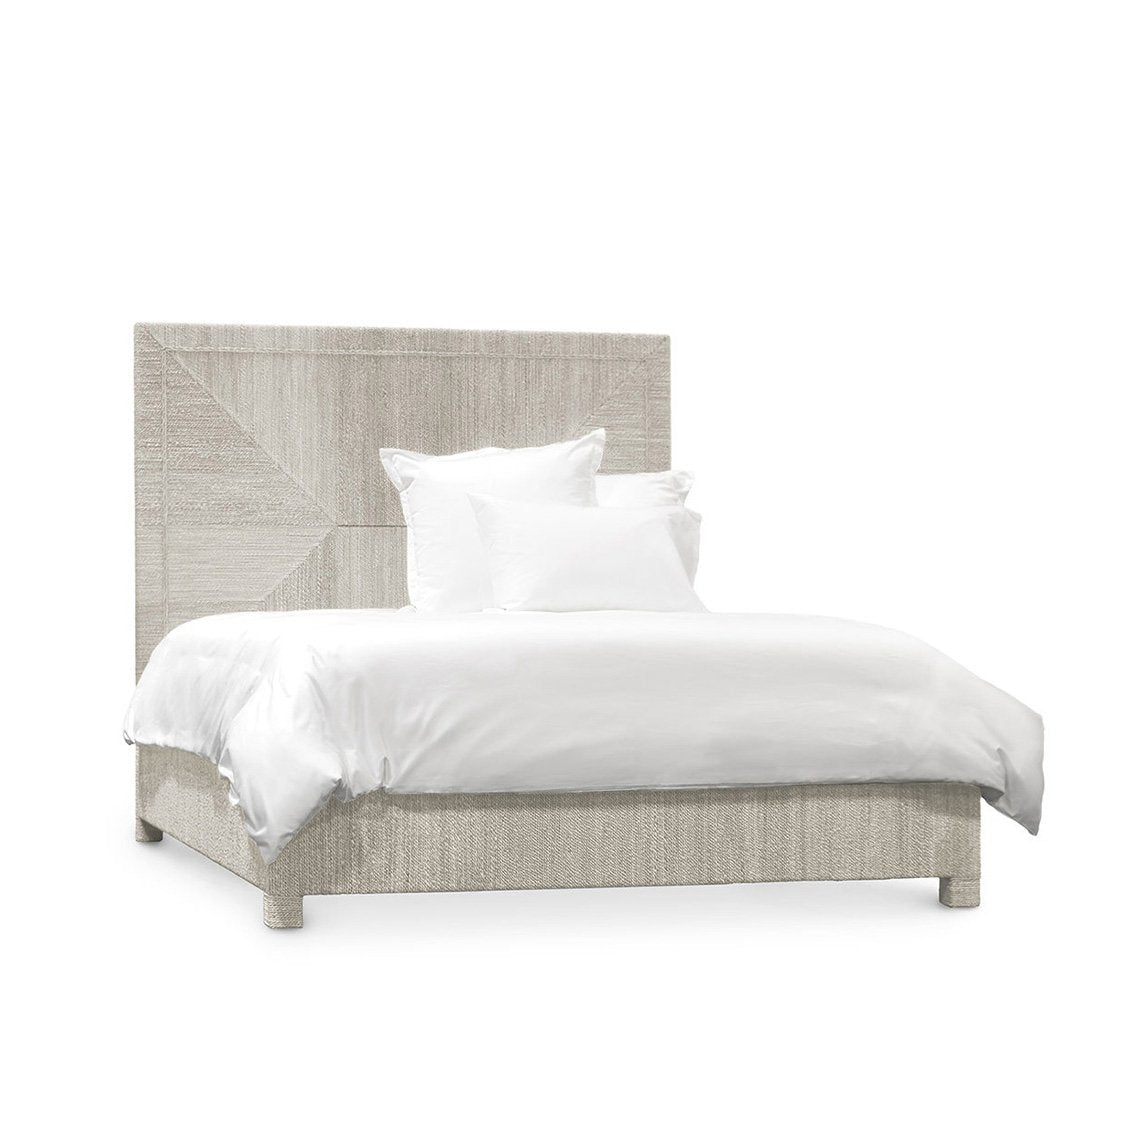 Woodside Bed, Queen, White Sand